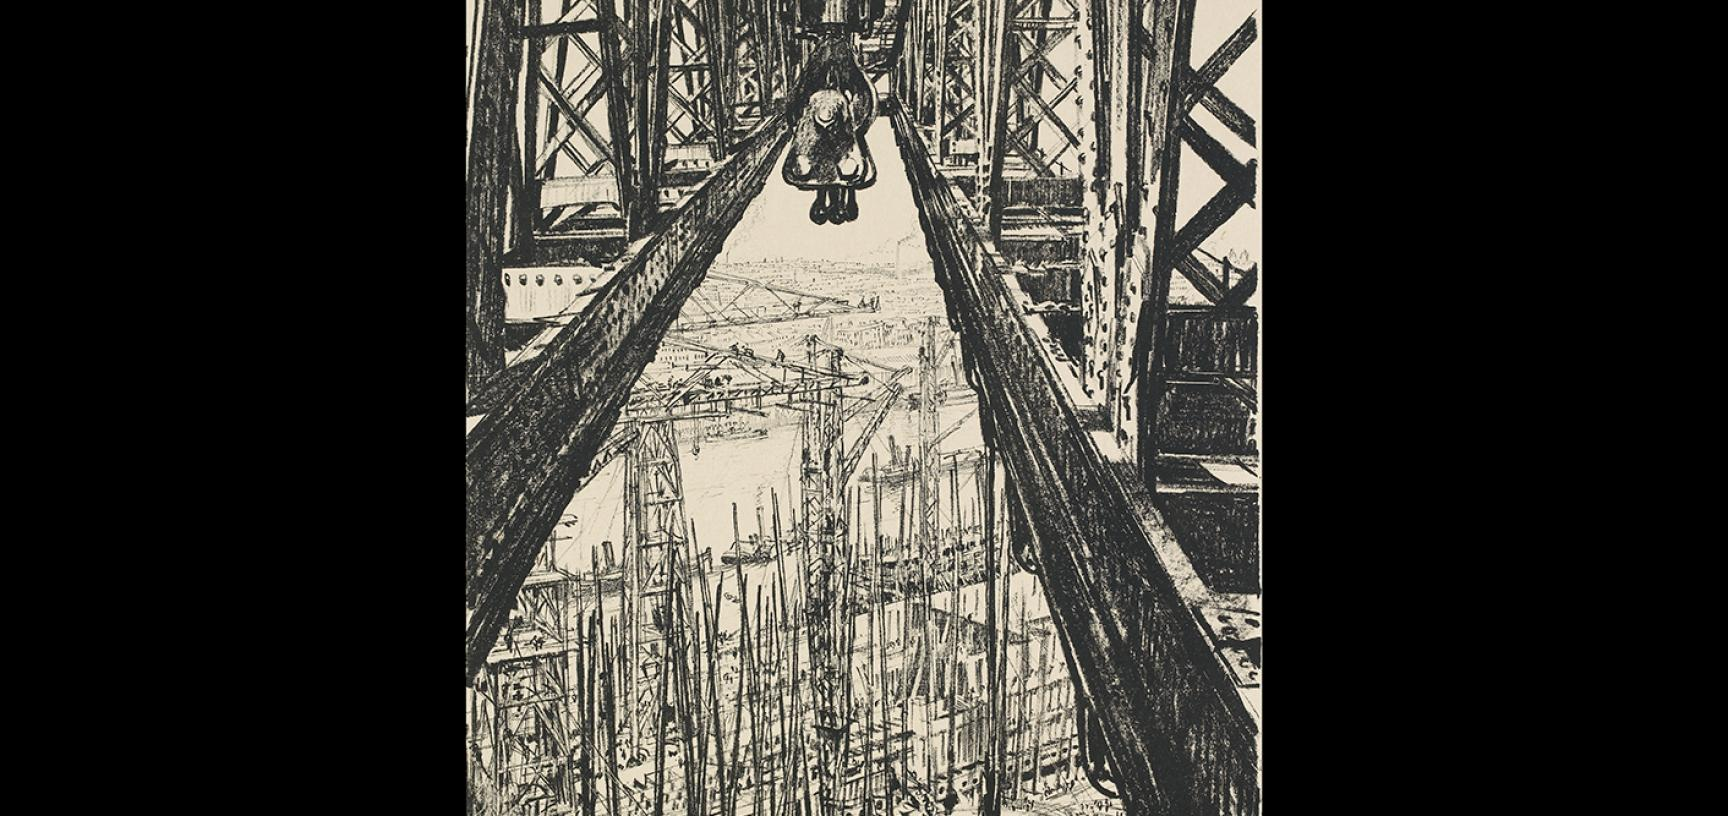 Muirhead Bone, A Ship-yard Seen from a Big Crane, 1917 © Ashmolean Museum, Presented by the Ministry of Information, WA1919.31.33